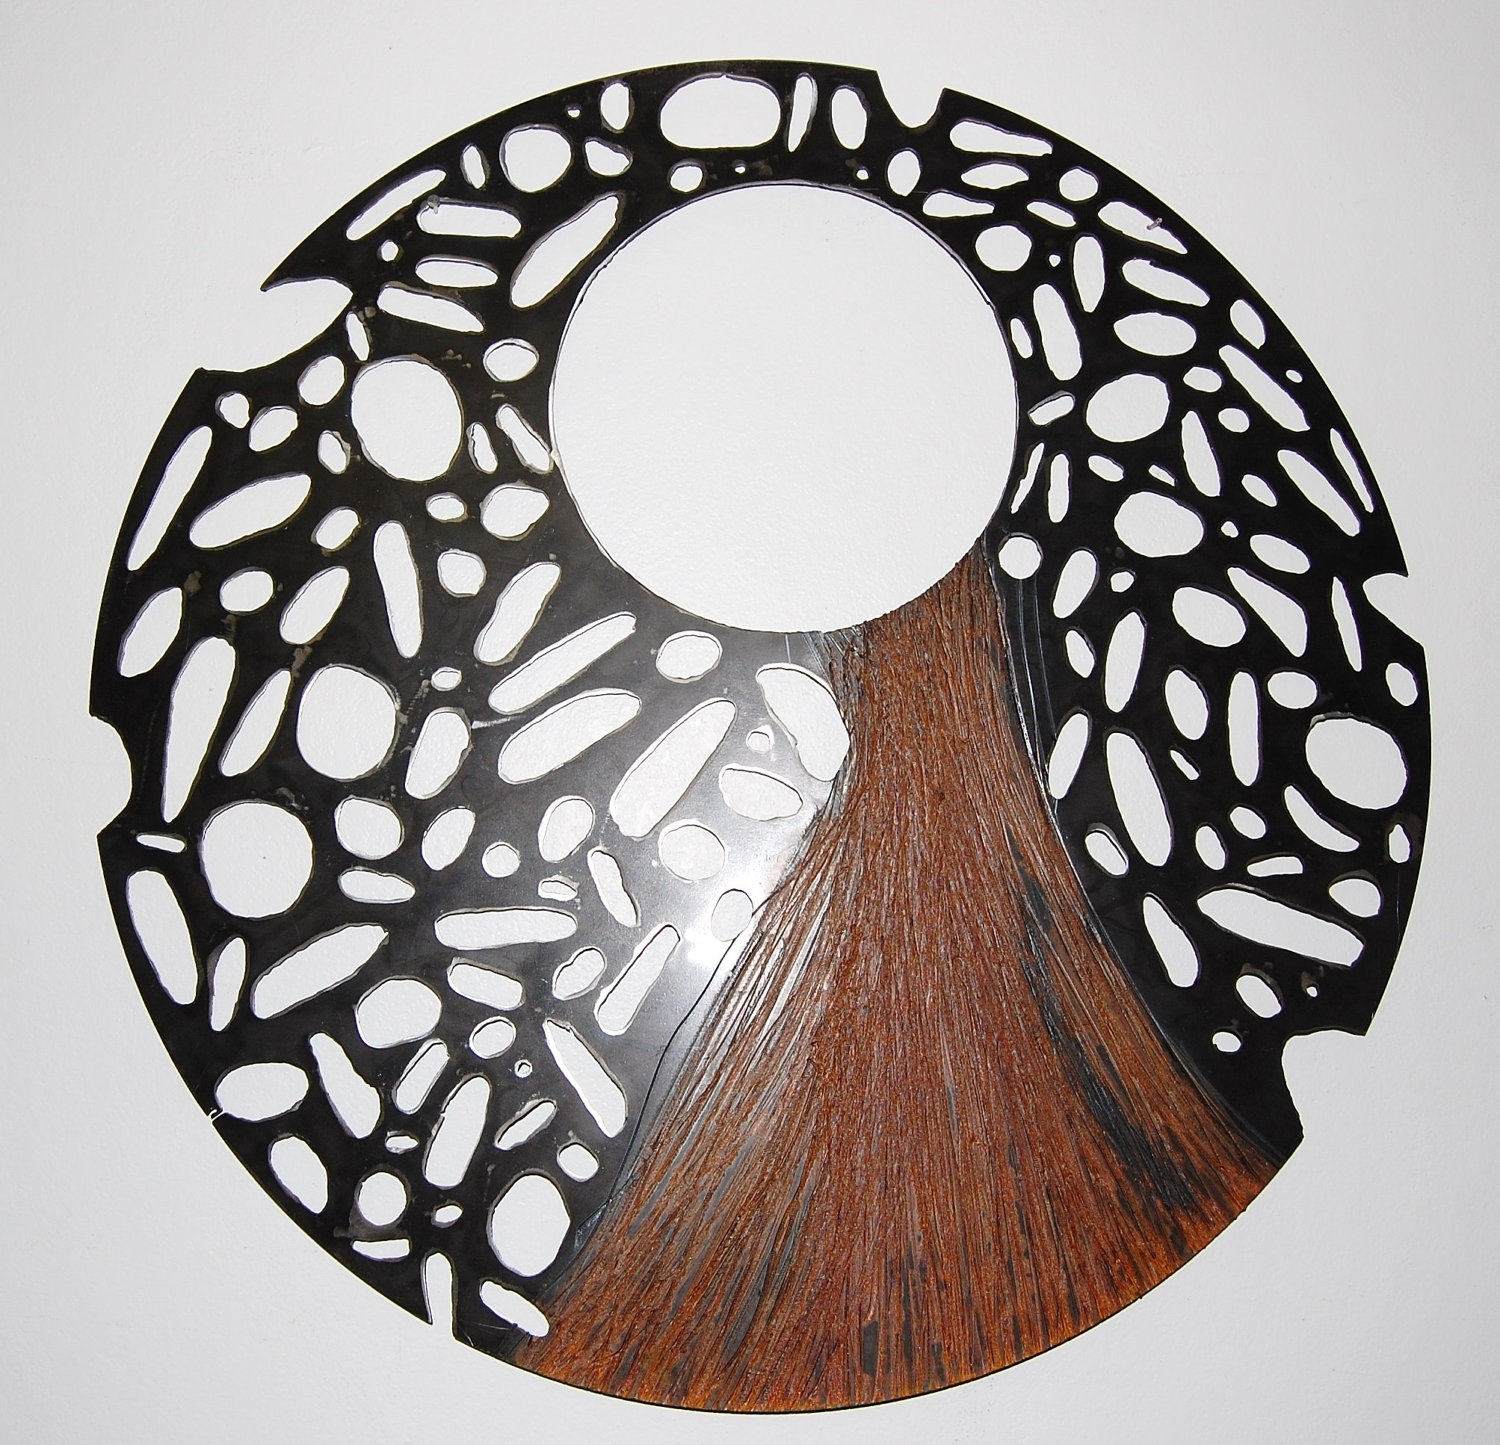 Large Steel Sculpture,recycled Metal Wall Art, Round Perforated Inside Newest Abstract Garden Wall Art (View 9 of 20)